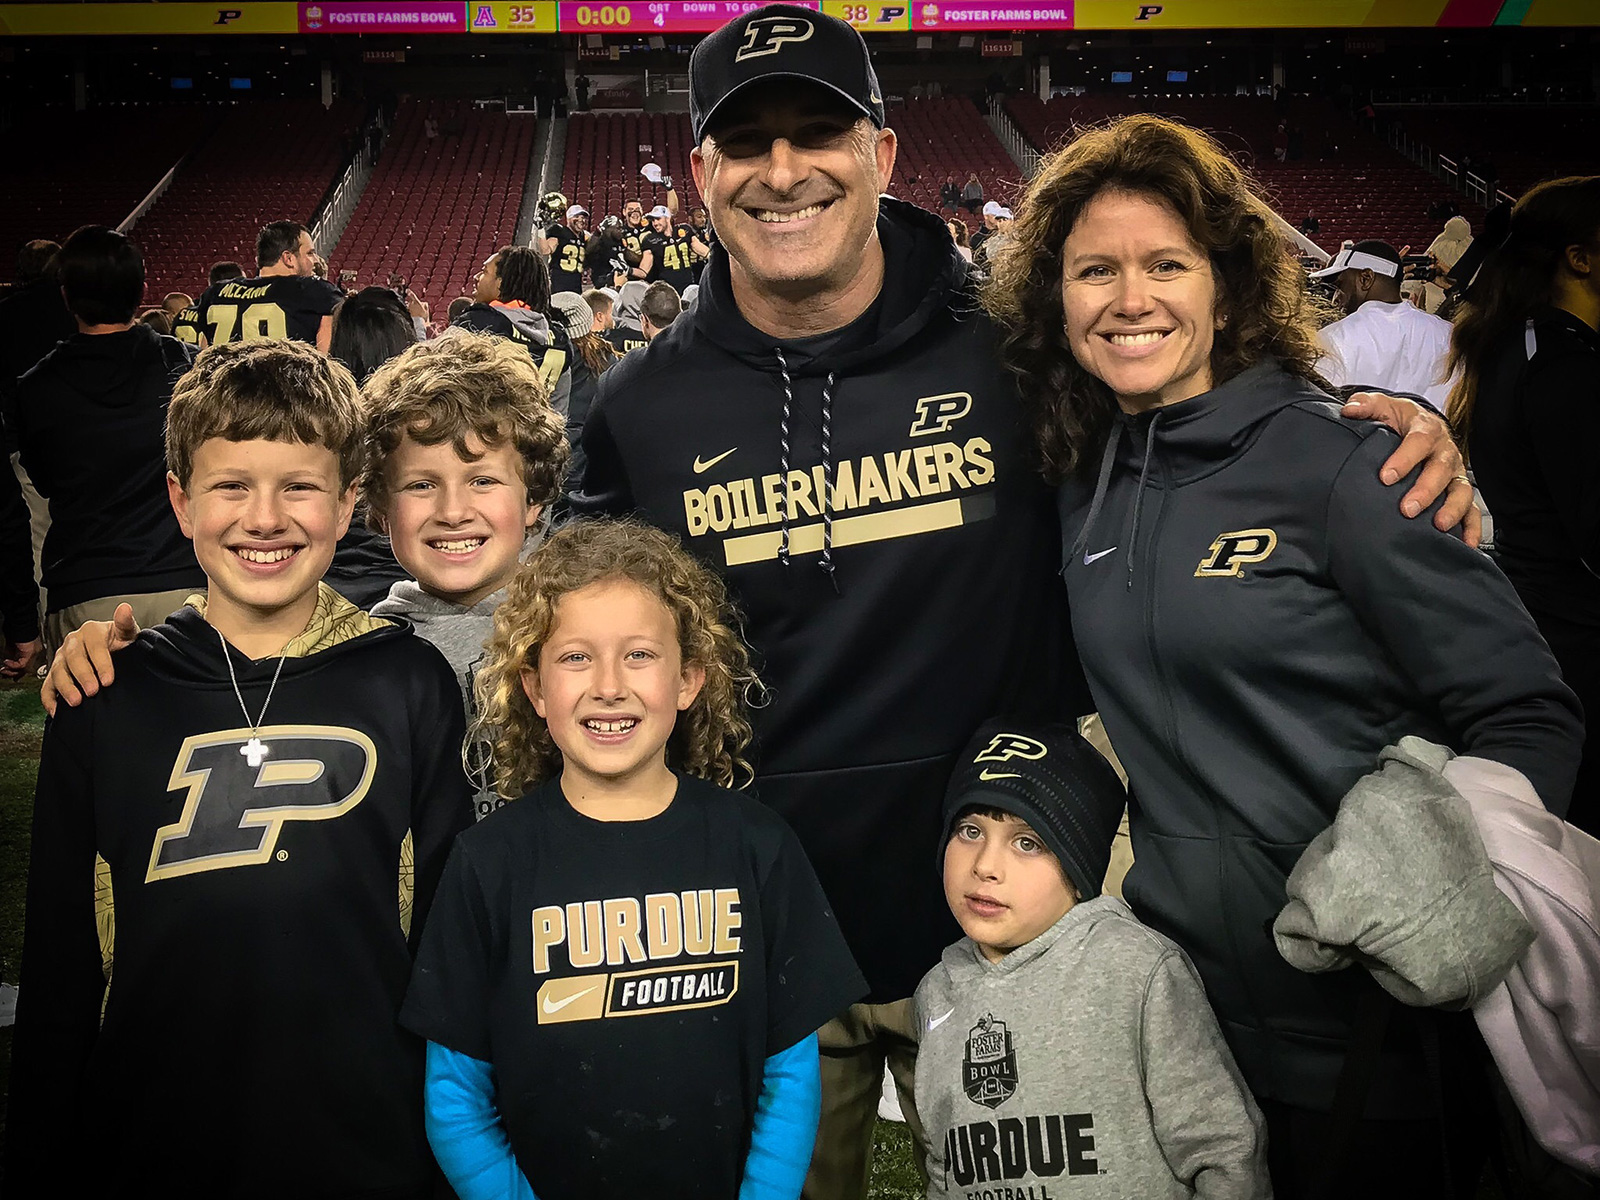 The Levines knew Purdue's Foster Farms Bowl victory in Santa Clara would be Tony's last game on the sidelines.